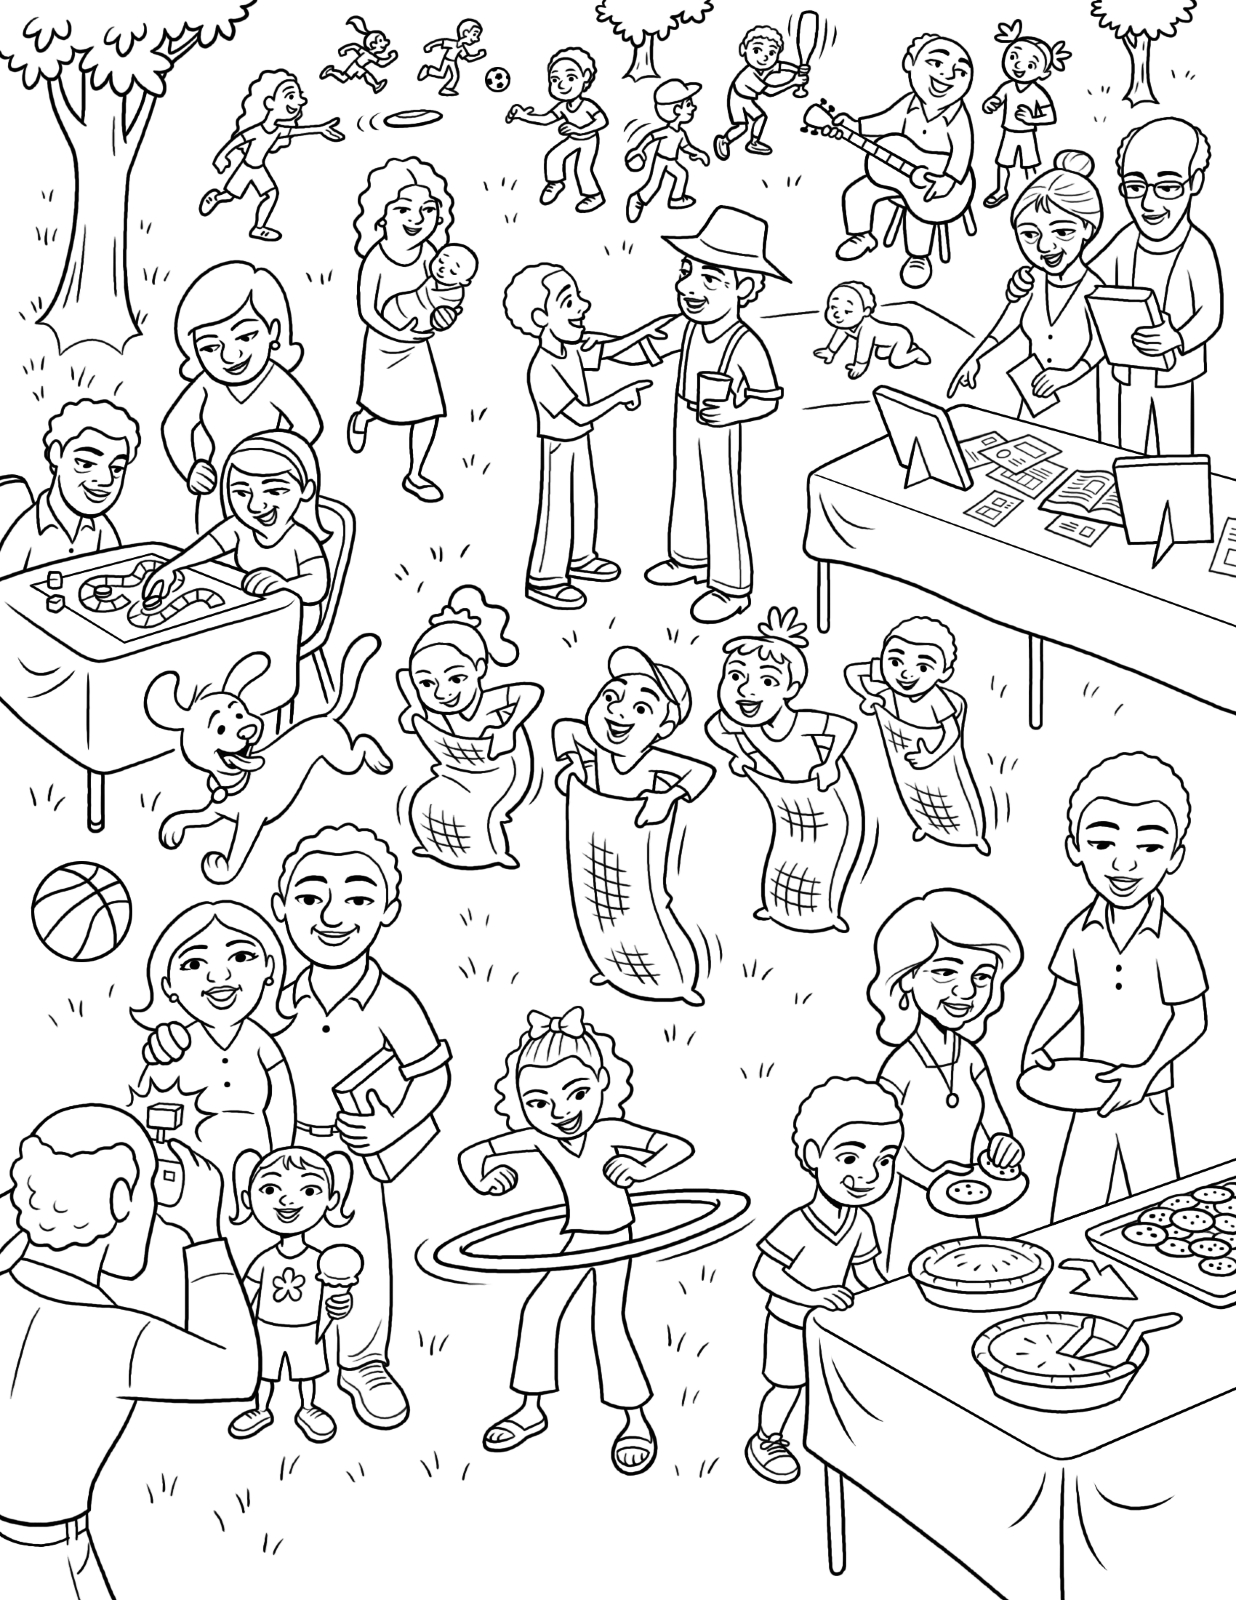 Christmas Family Dinner Coloring Pages